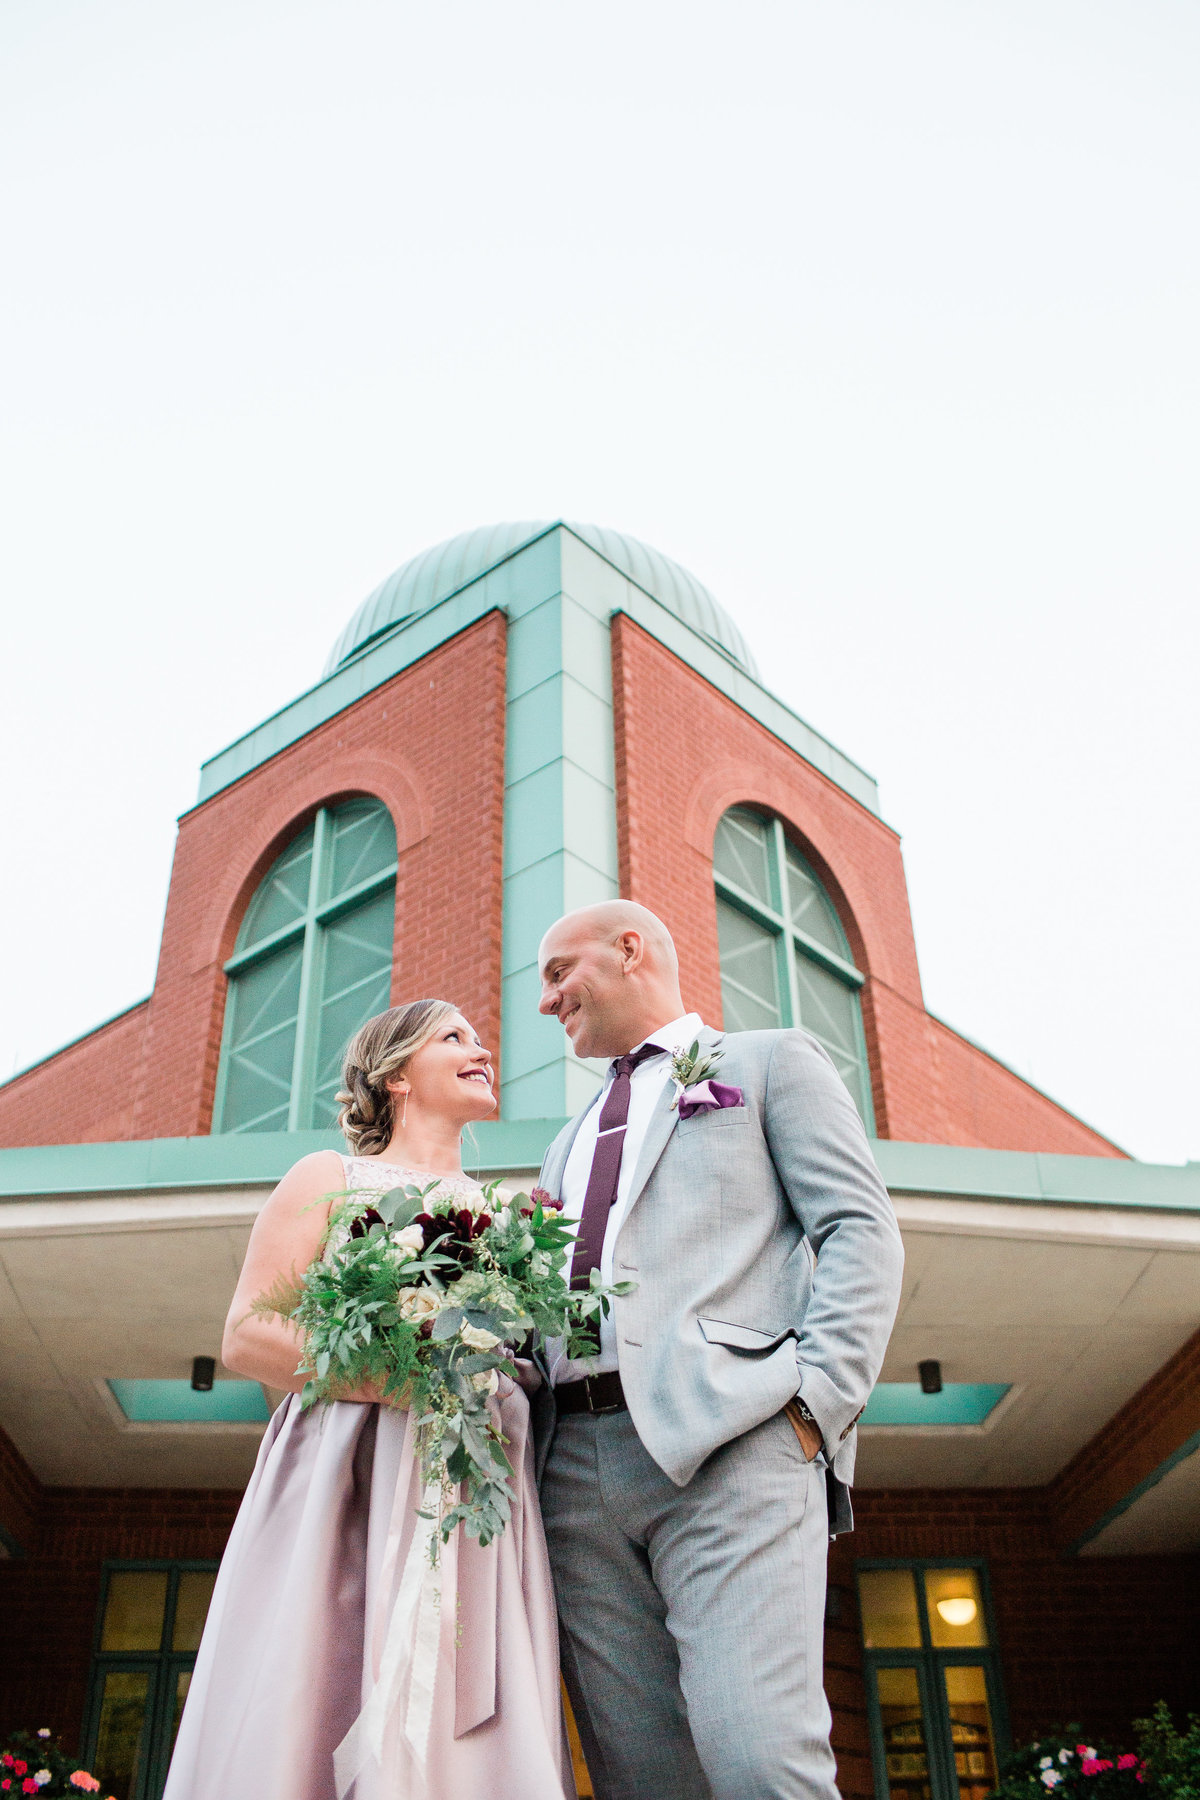 Toronto Ontario Wedding Photographer - Silver Linings Photography-17